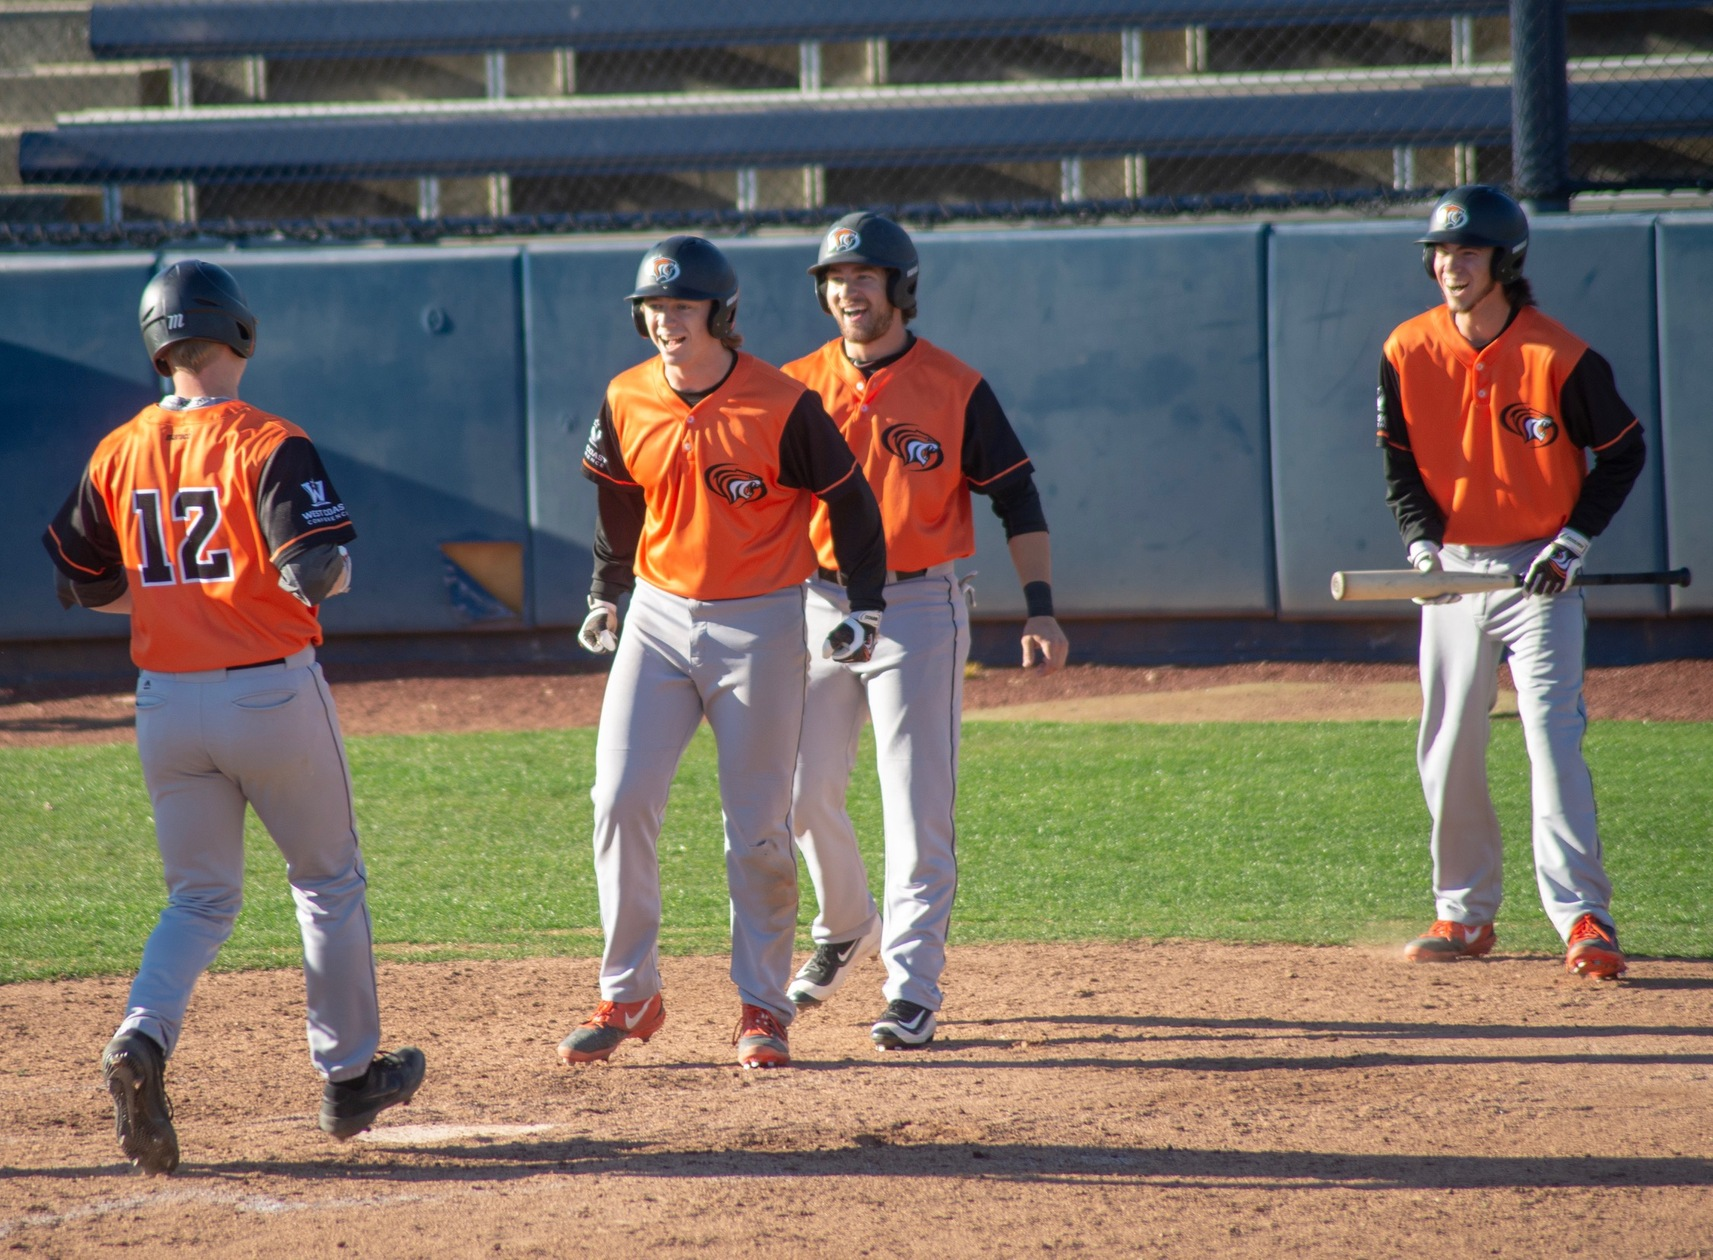 Tigers comeback from seven-run deficit to win